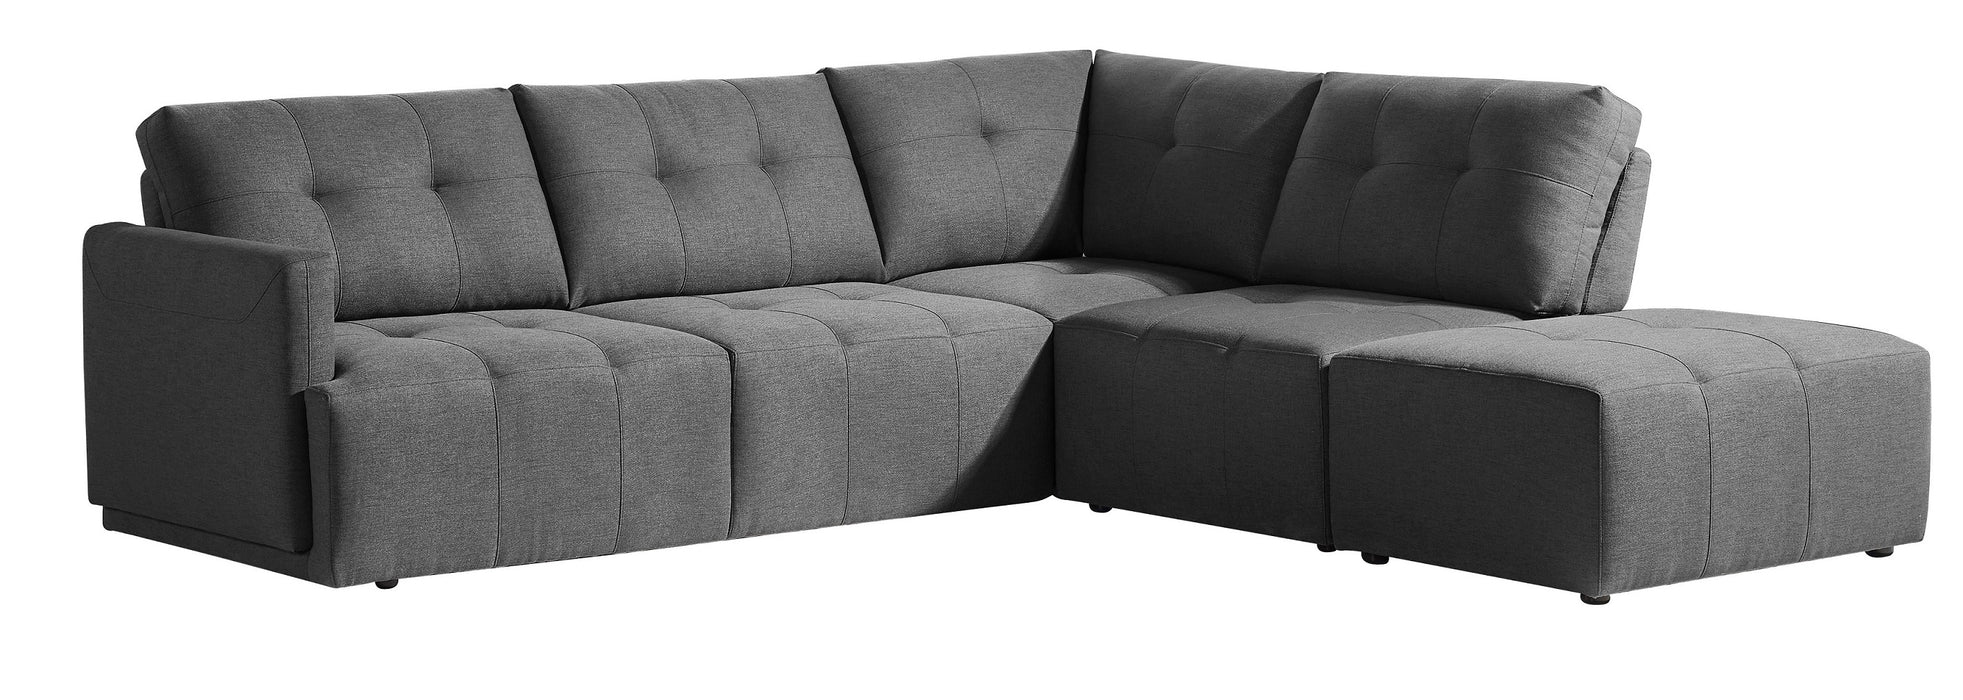 New Classic Furniture | Living Sectional in New Jersey, NJ 6402